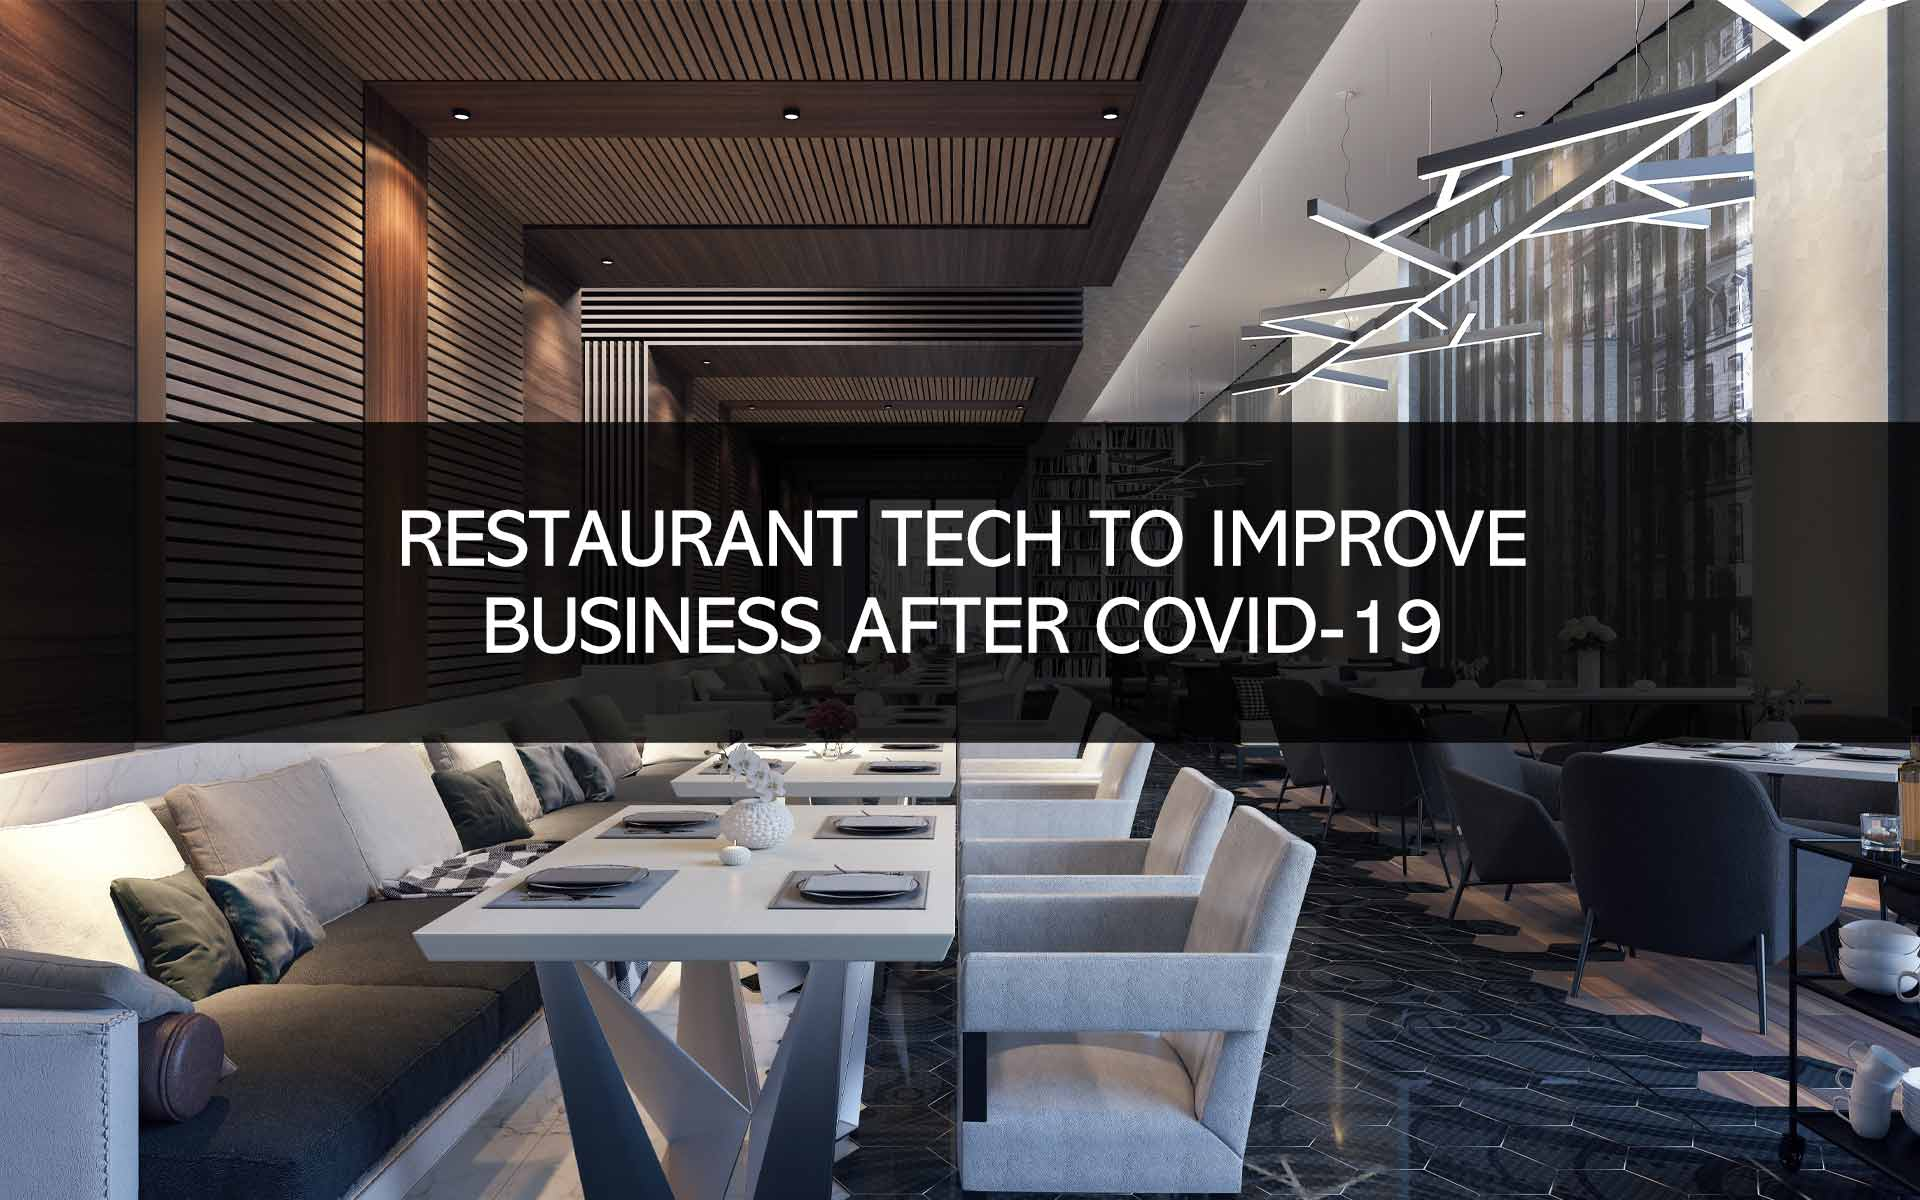 Restaurant Tech To Improve Business After COVID-19